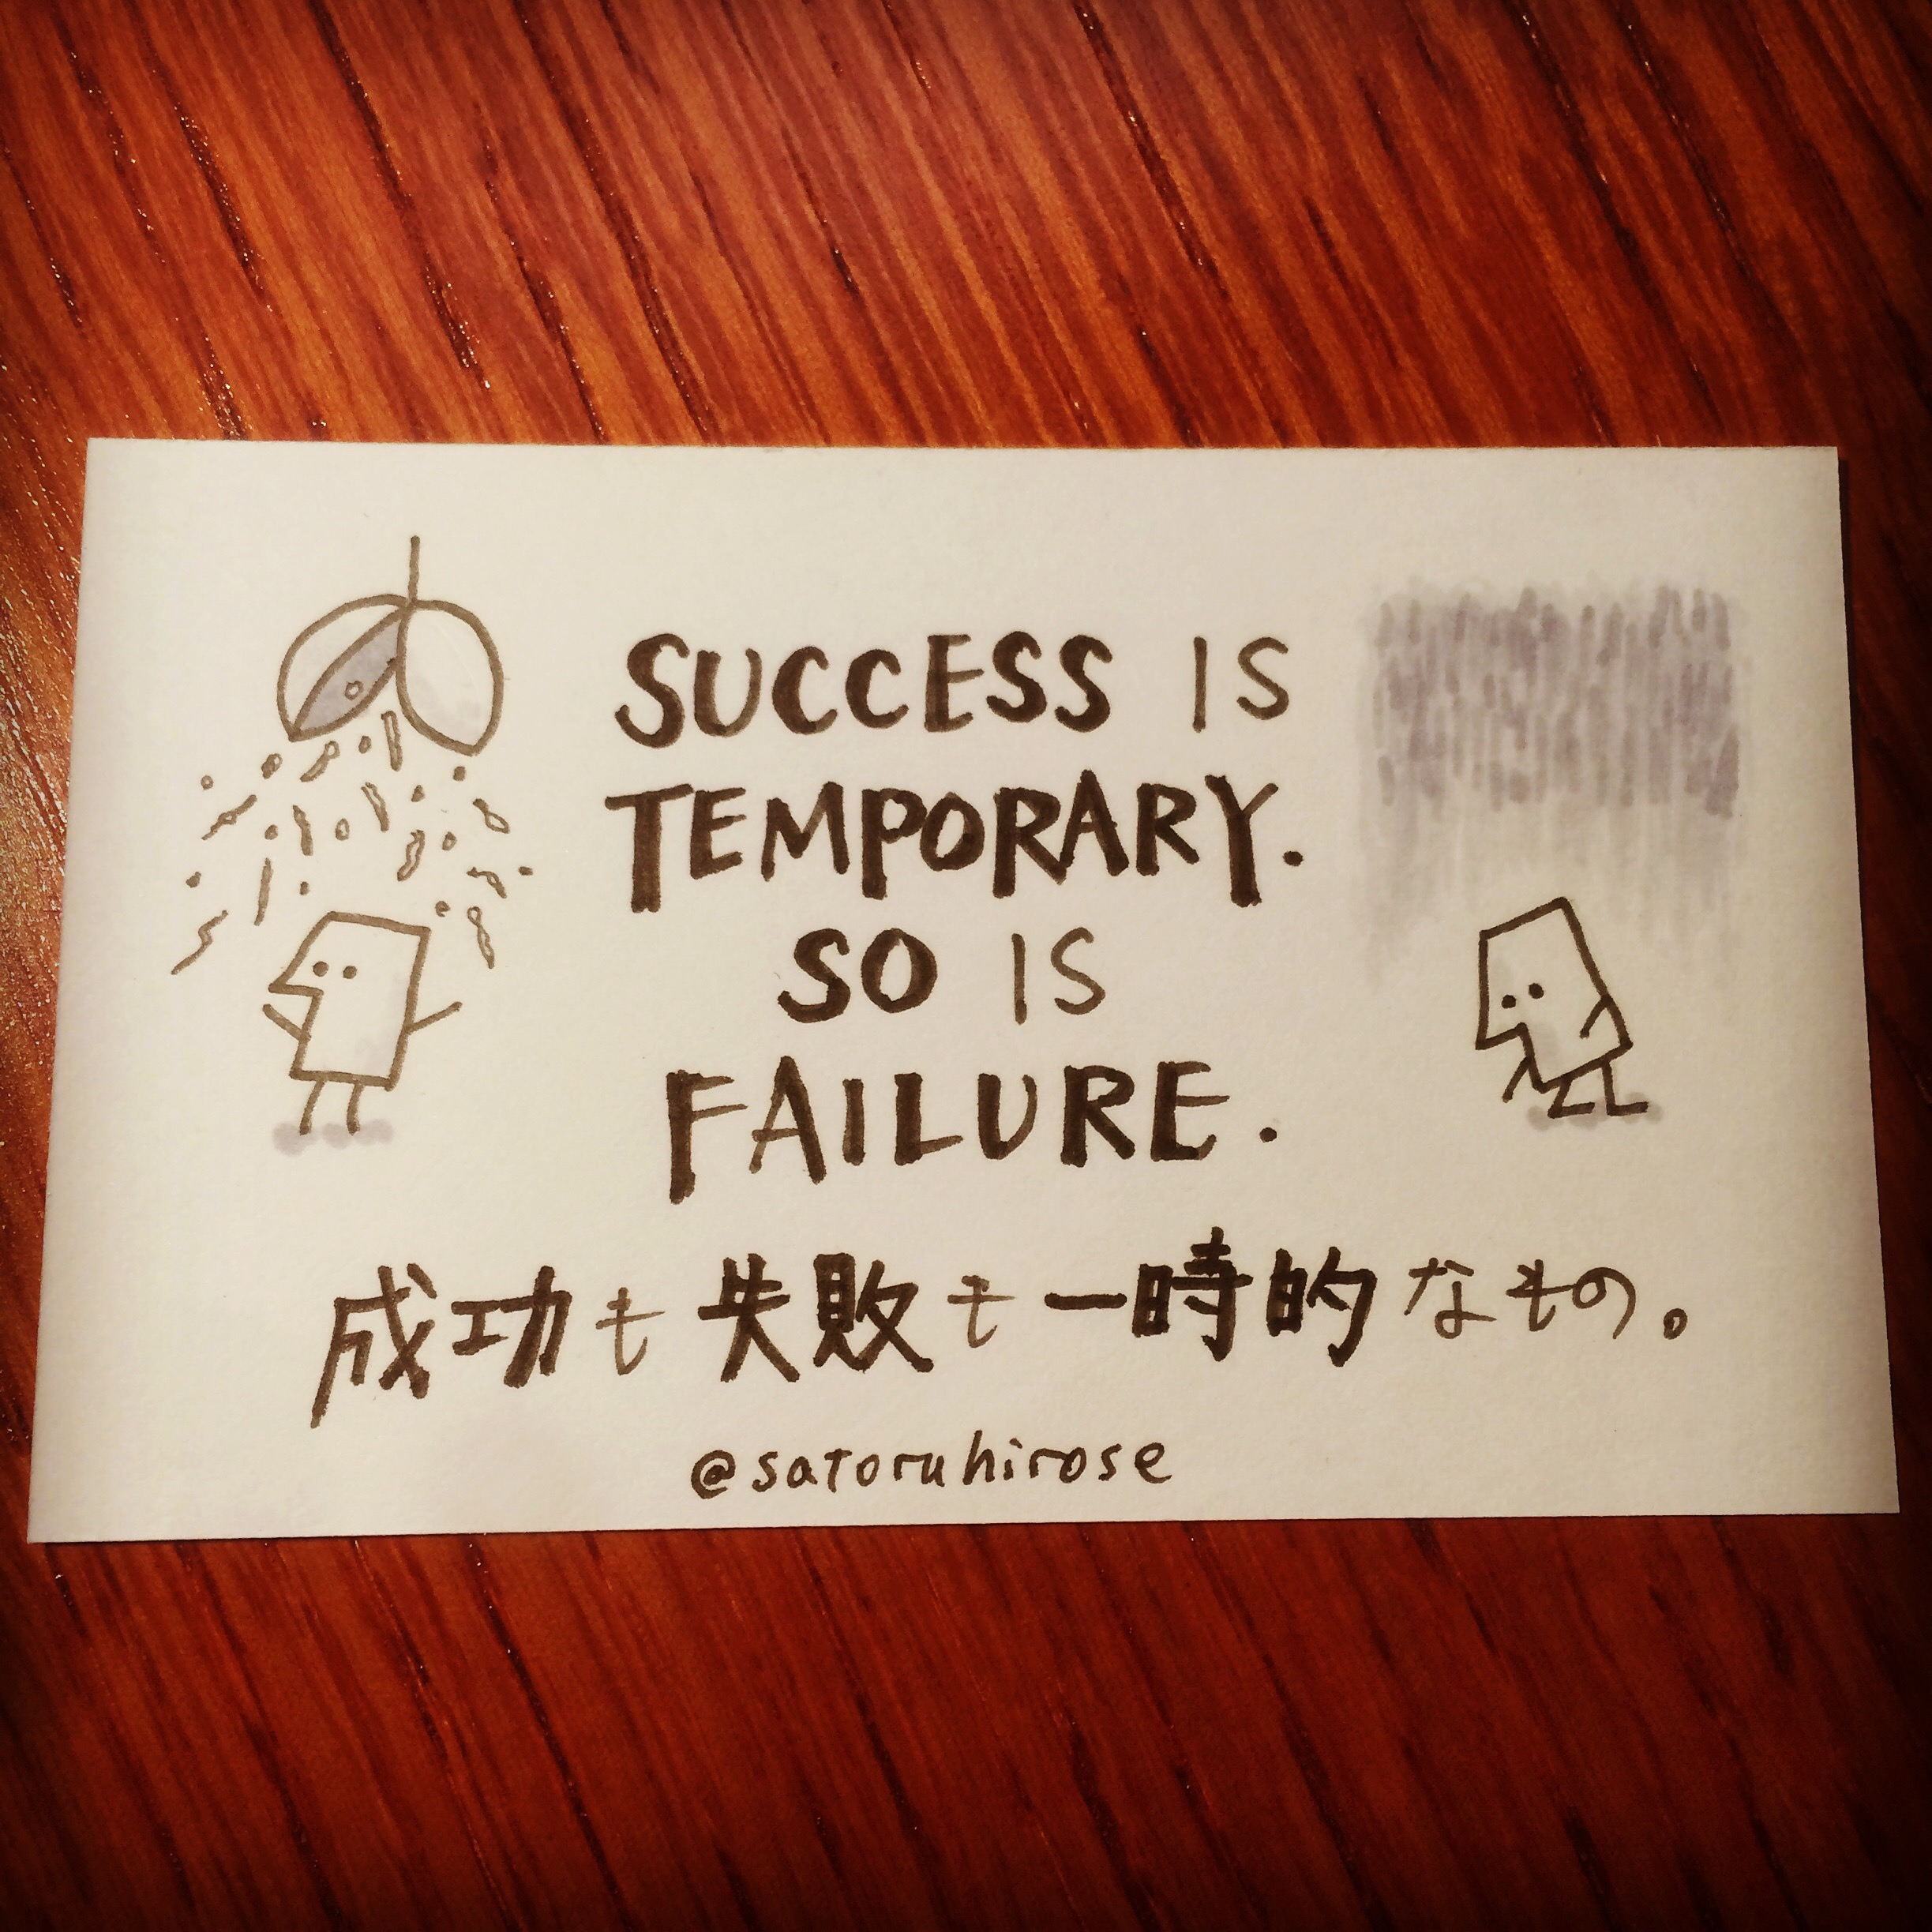 Success is temporary. So is failure.